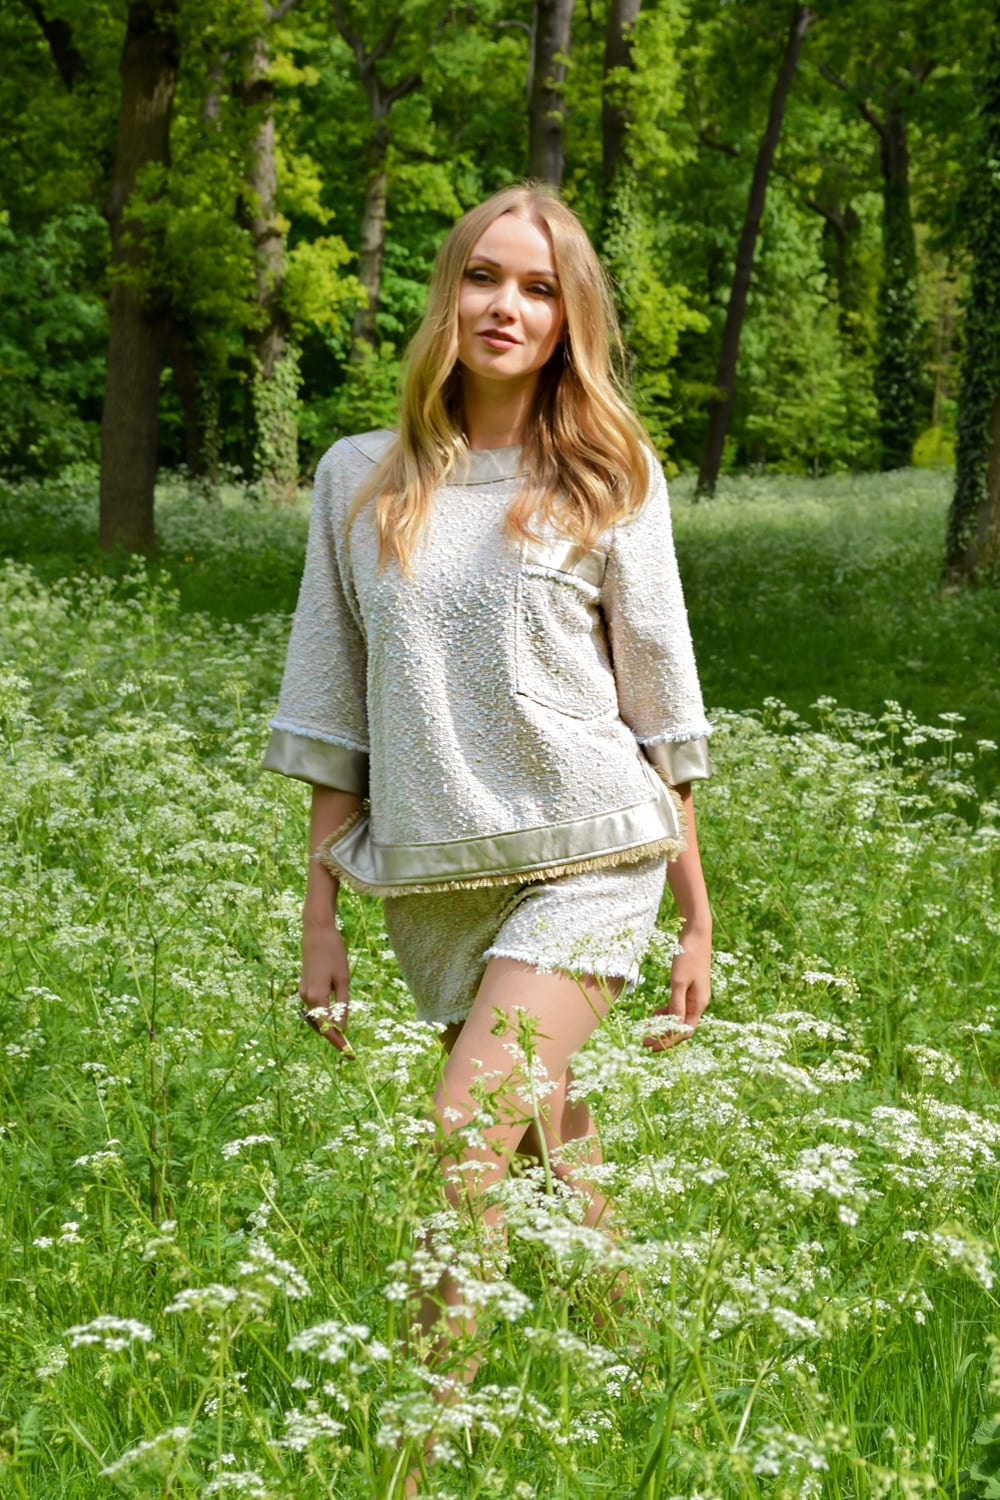 Chic fashion set with shorts and tweed top by the French fashion designer Erik Schaix. Discover our summer collection handmade in Paris.